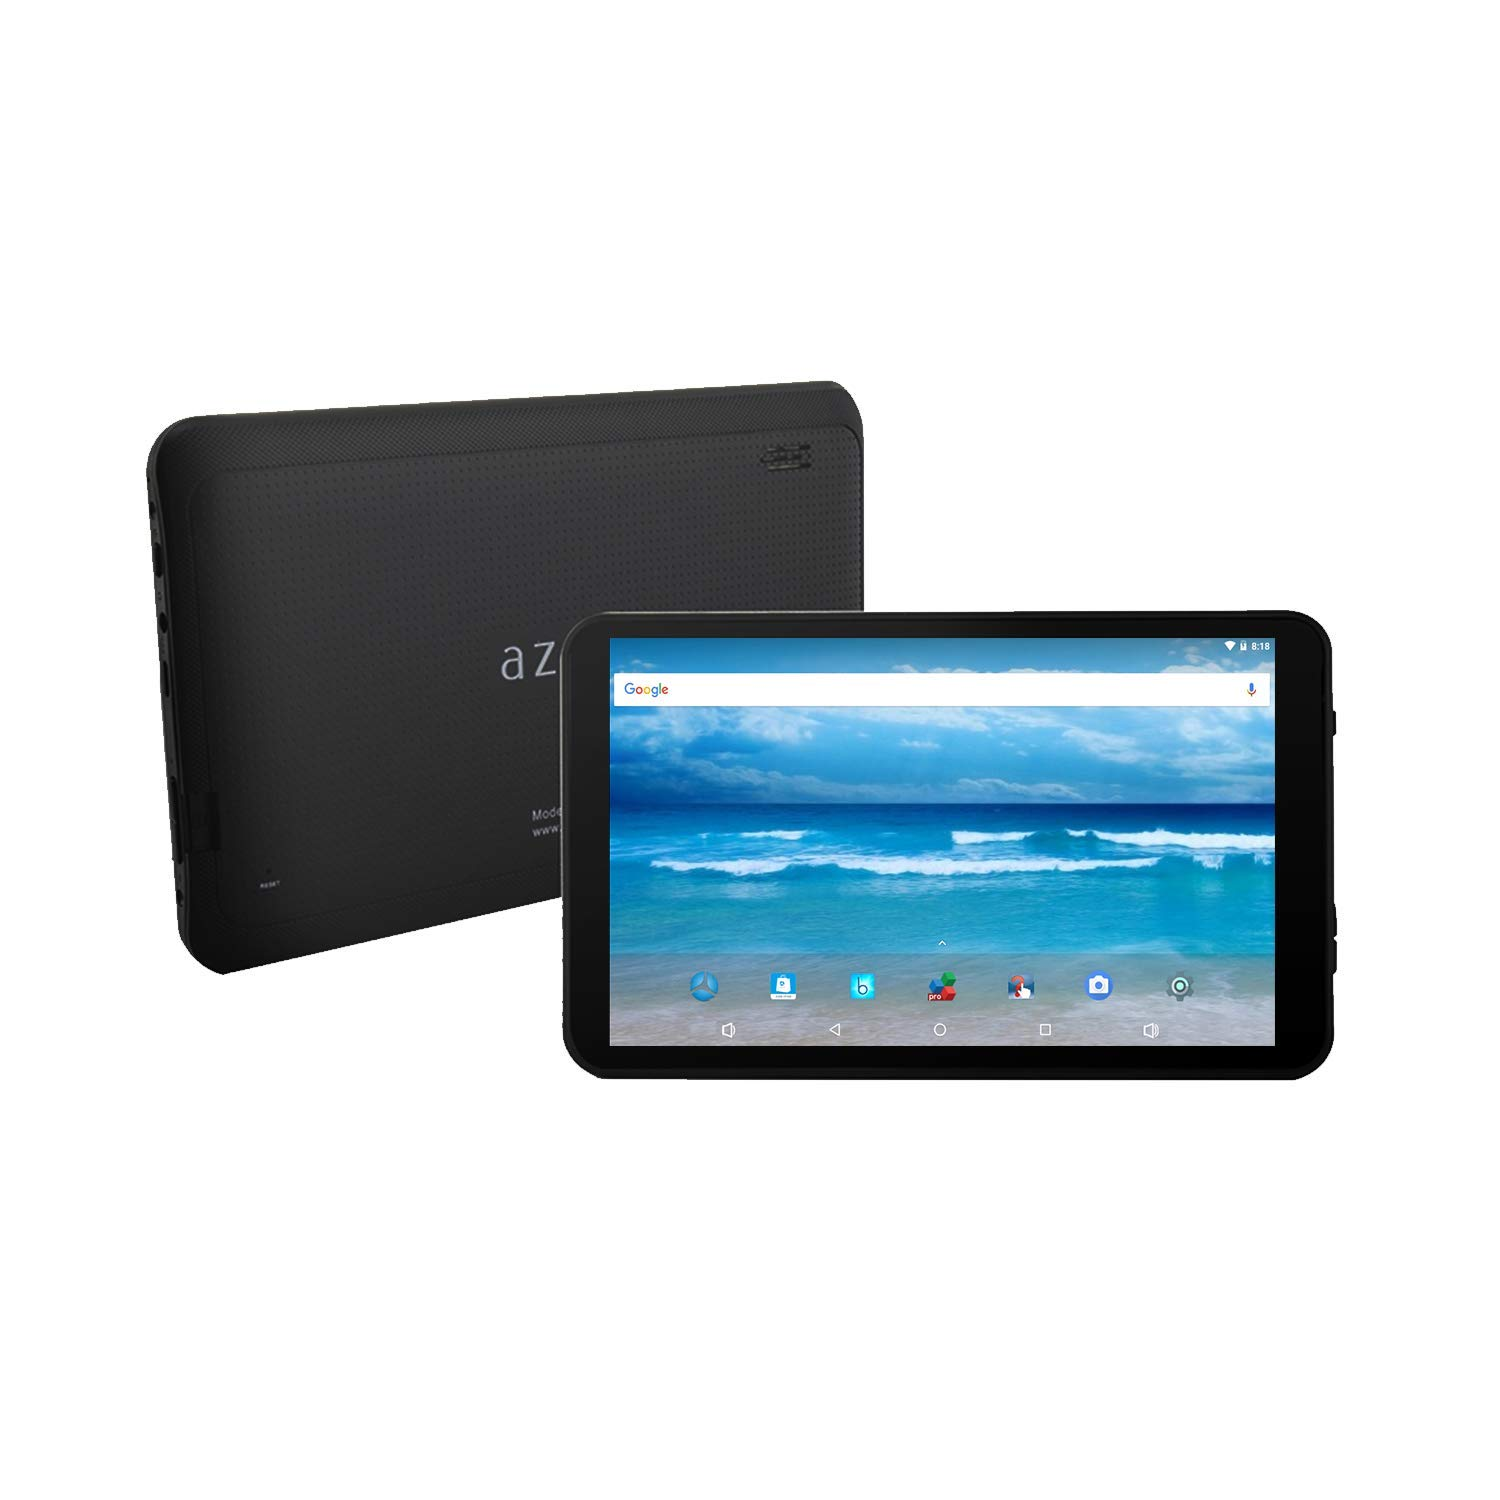 """Azpen 7"""" Inch Touchscreen, Android 8.1 Oreo, Google Certified HD Tablet, 1GB RAM, 8GB Memory, Bluetooth, Camera, Micro SD Port."""